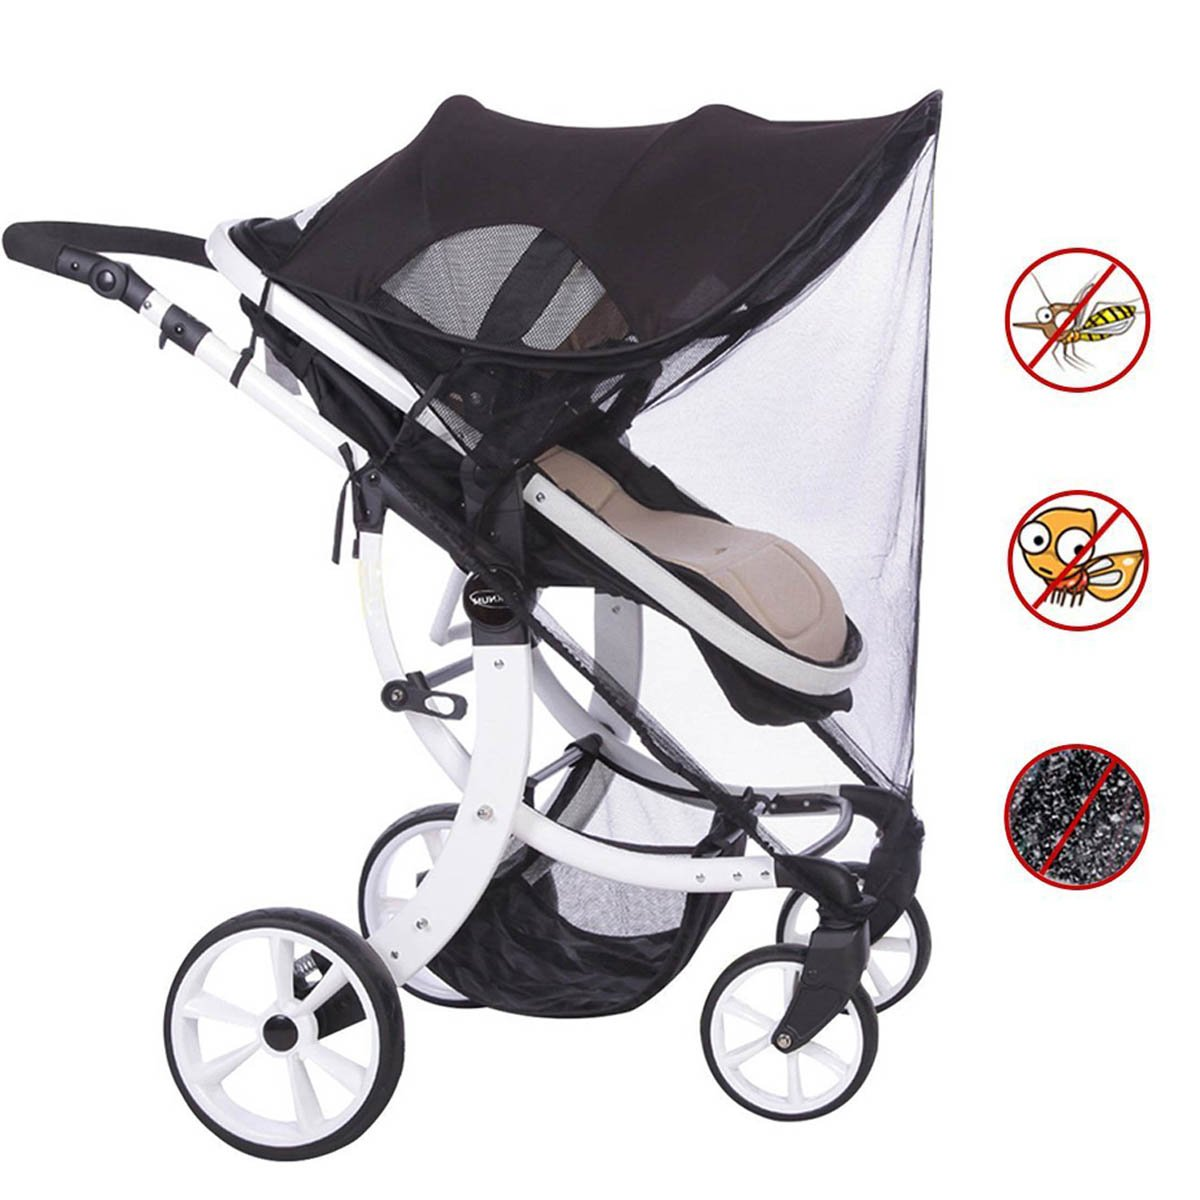 ADESUGATA Baby Stroller Sun Cover, Infant Pushchair Sun Shade, Stroller UV Protection Rays Cover Awning Black